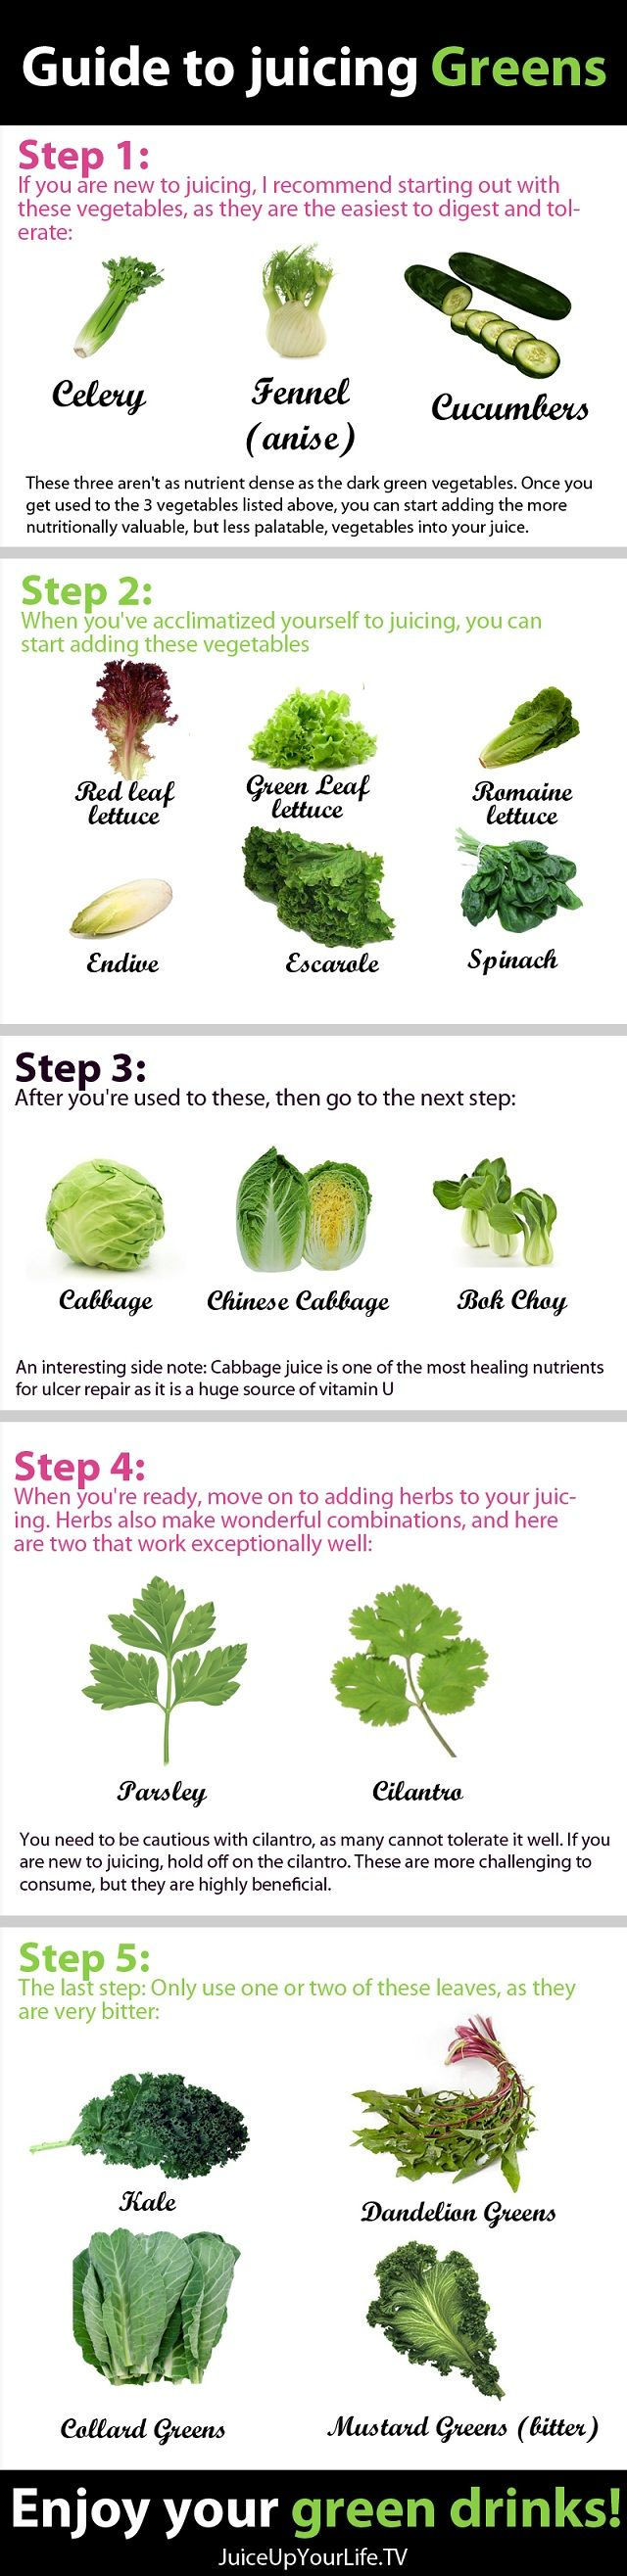 This guide has great suggestions for working more greens into your diet. Don't be afraid to jump ahead, but if you like to take it slow...